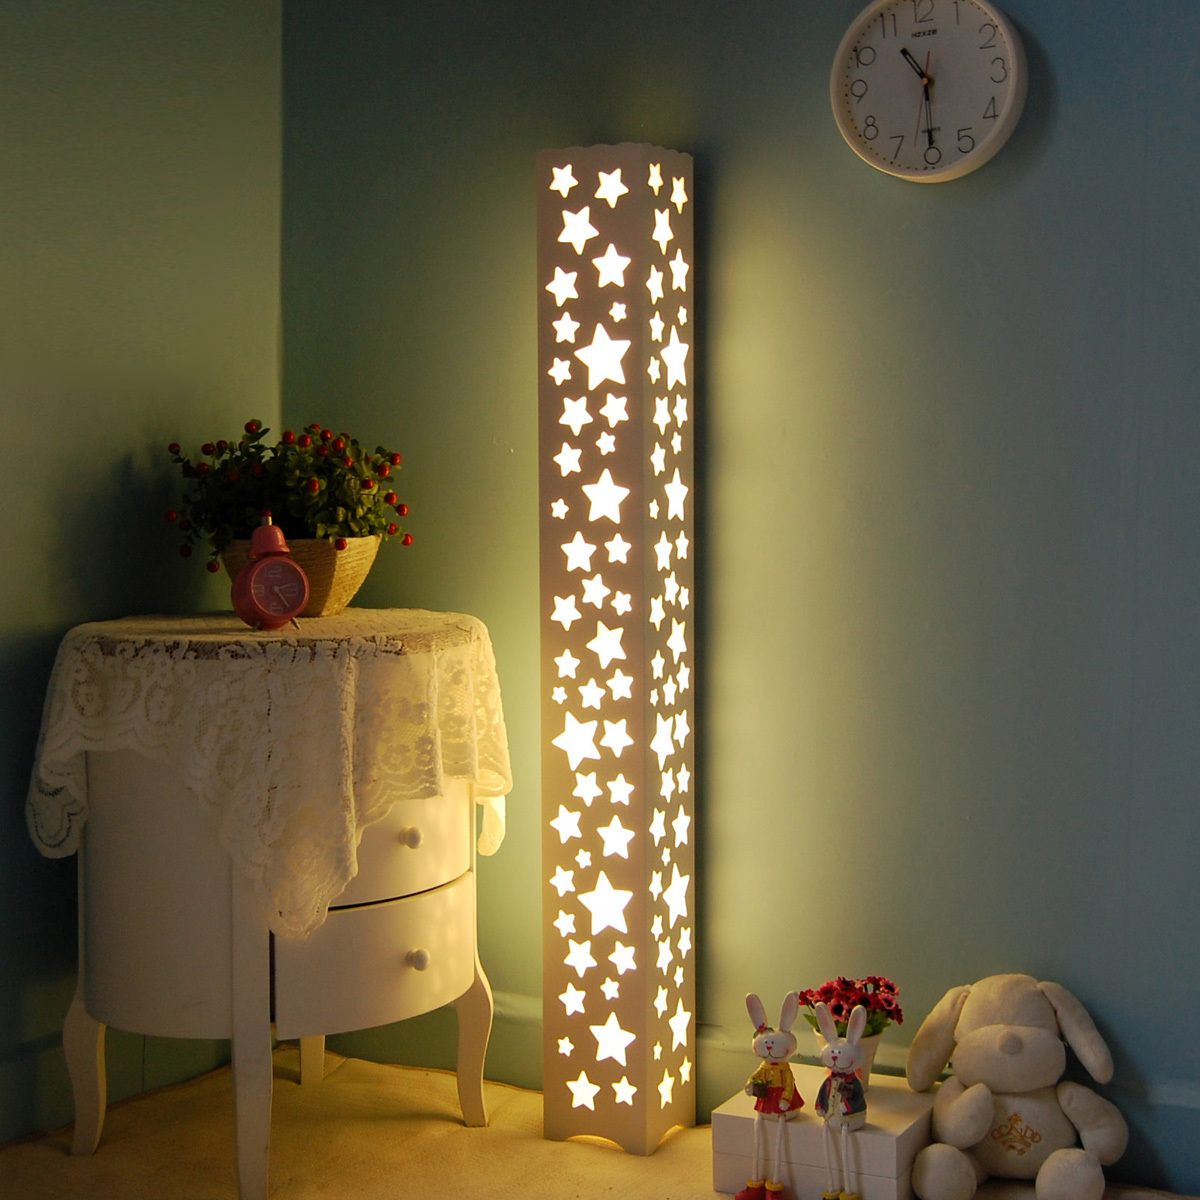 Night Lamps at the Bedroom: Necessary Lighting Fixtures. High lamp with dotted cover